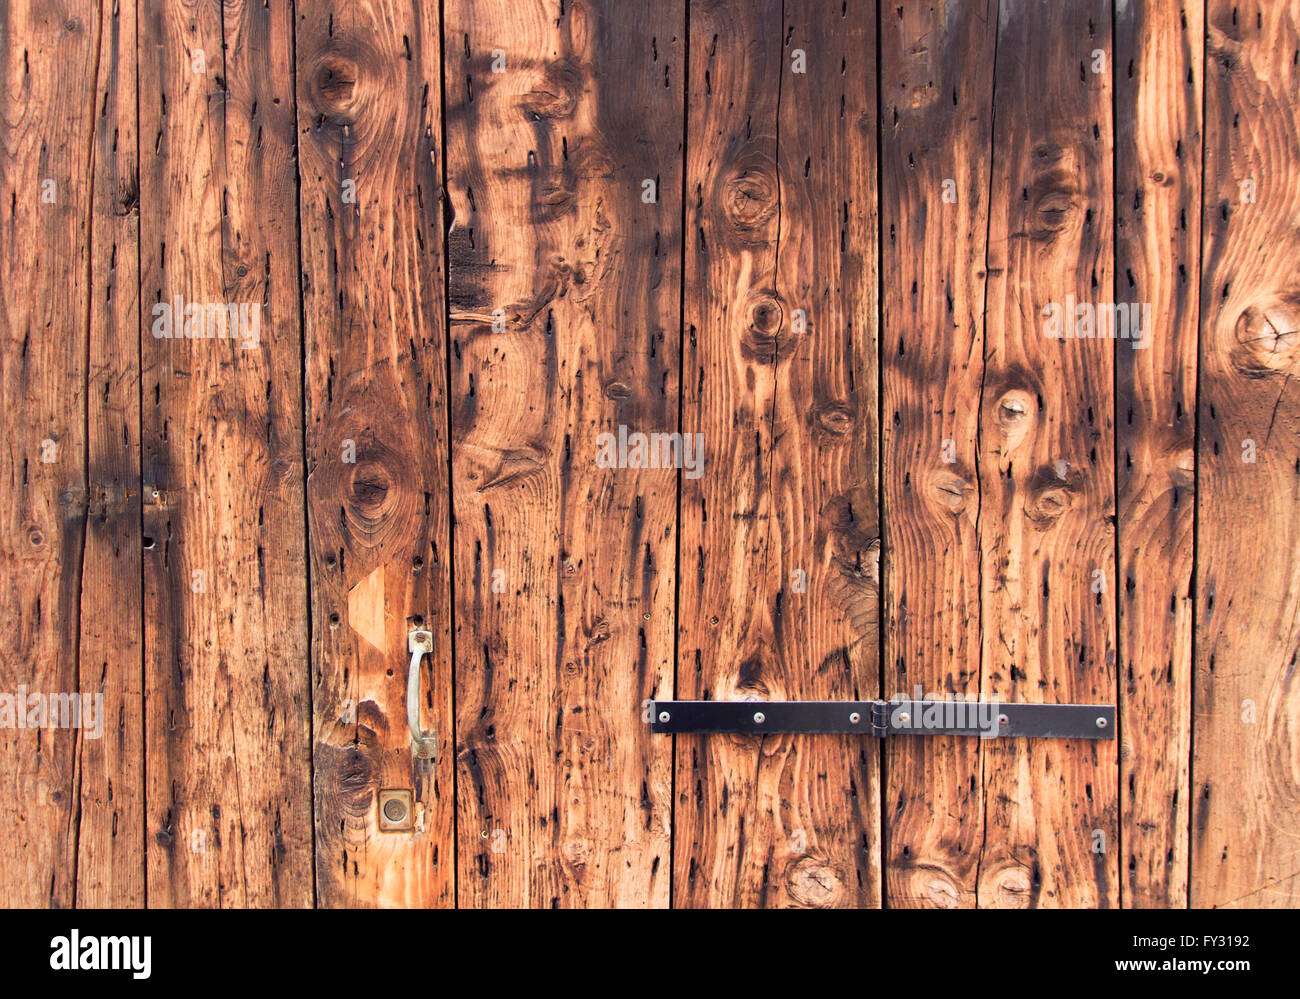 Old Wooden Door Background Closeup Natural Oak Tree Planks Surface Weathered Rustic Wood Material Brown Color Textured Wall